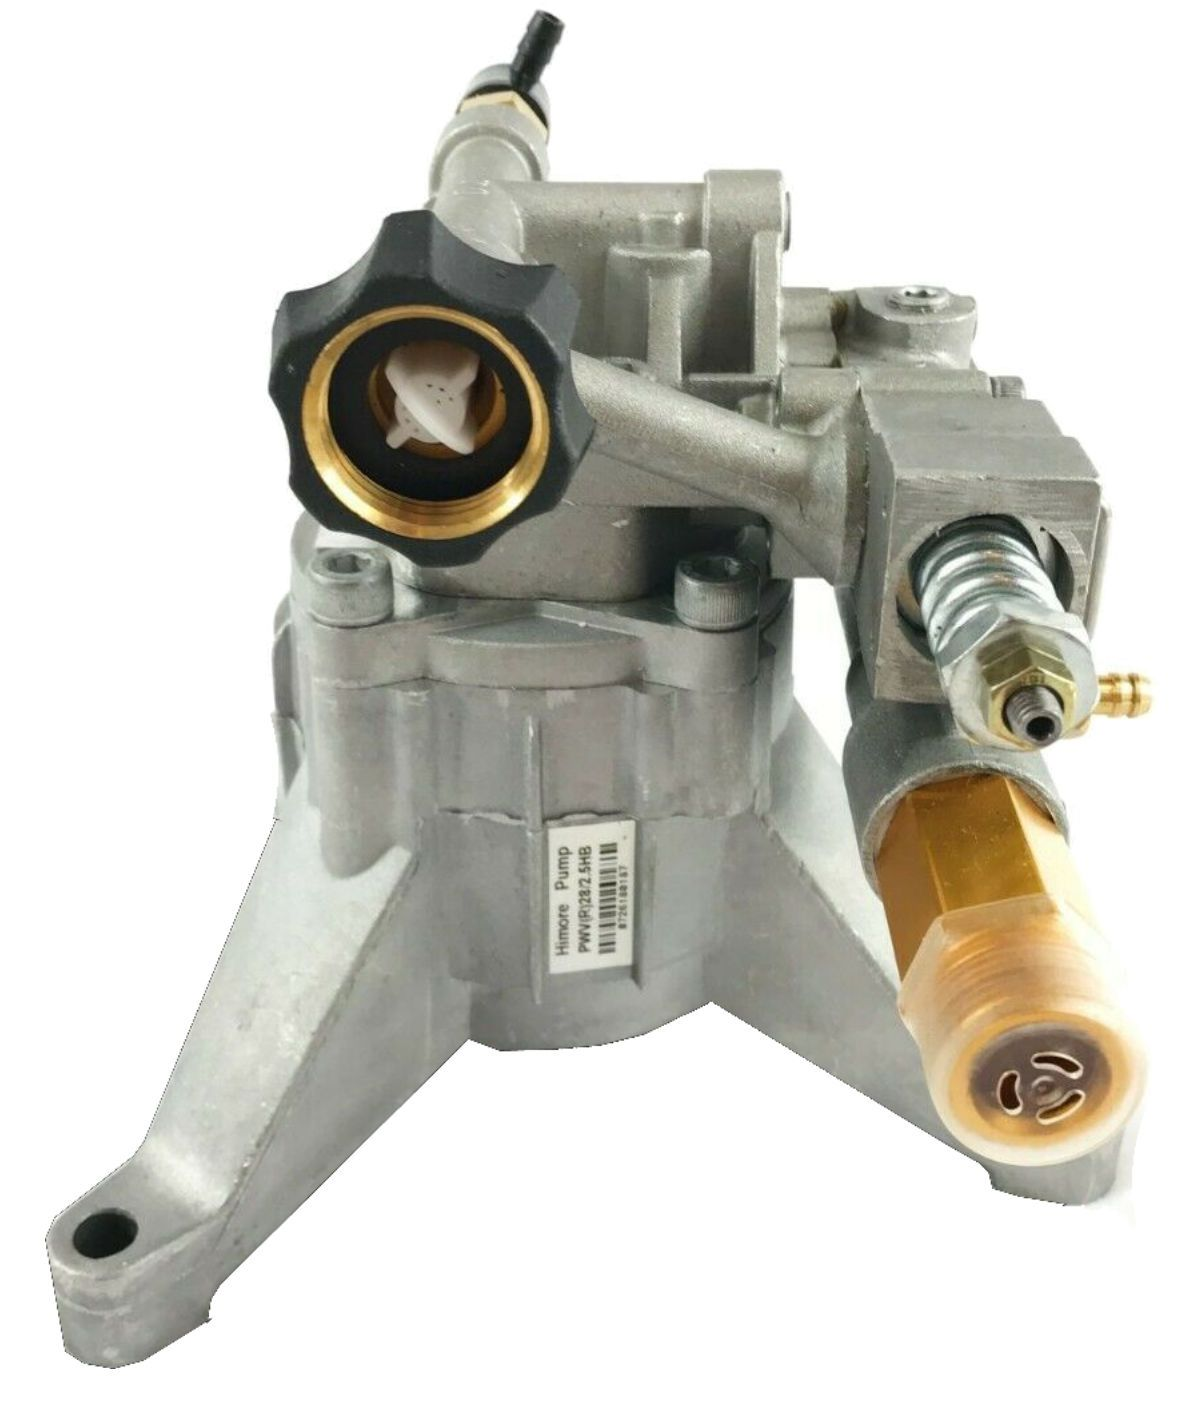 2700 PSI PRESSURE WASHER WATER PUMP Brute 020427-0 020345-0 020409-0 - AE-Power